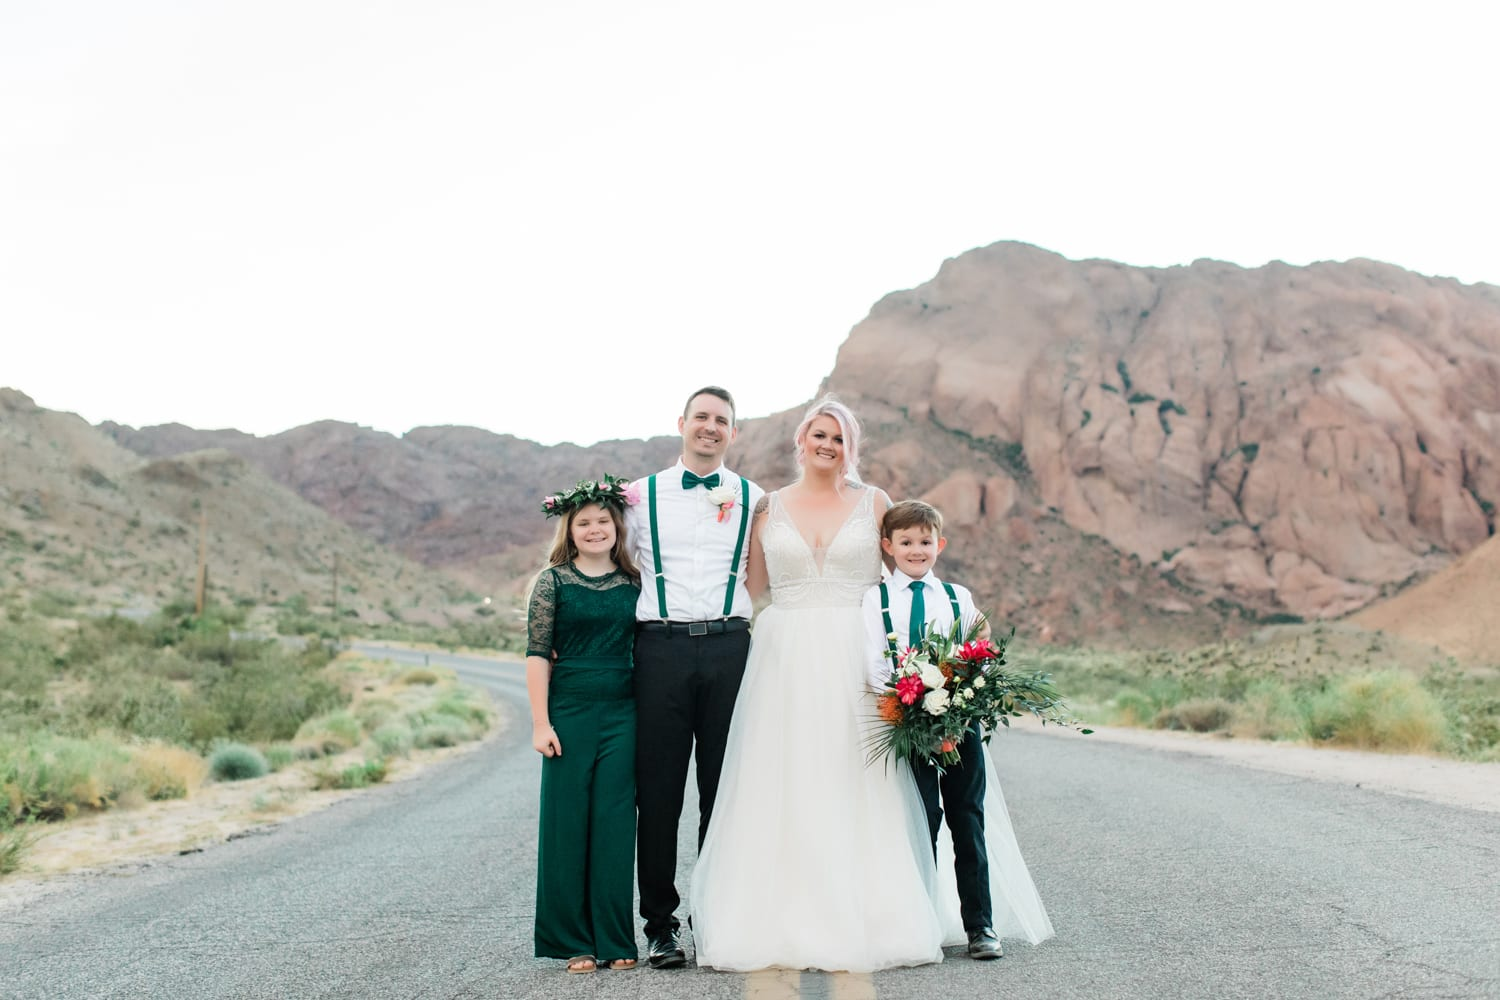 Hayley + Andrew and their family at Eldorado Canyon.